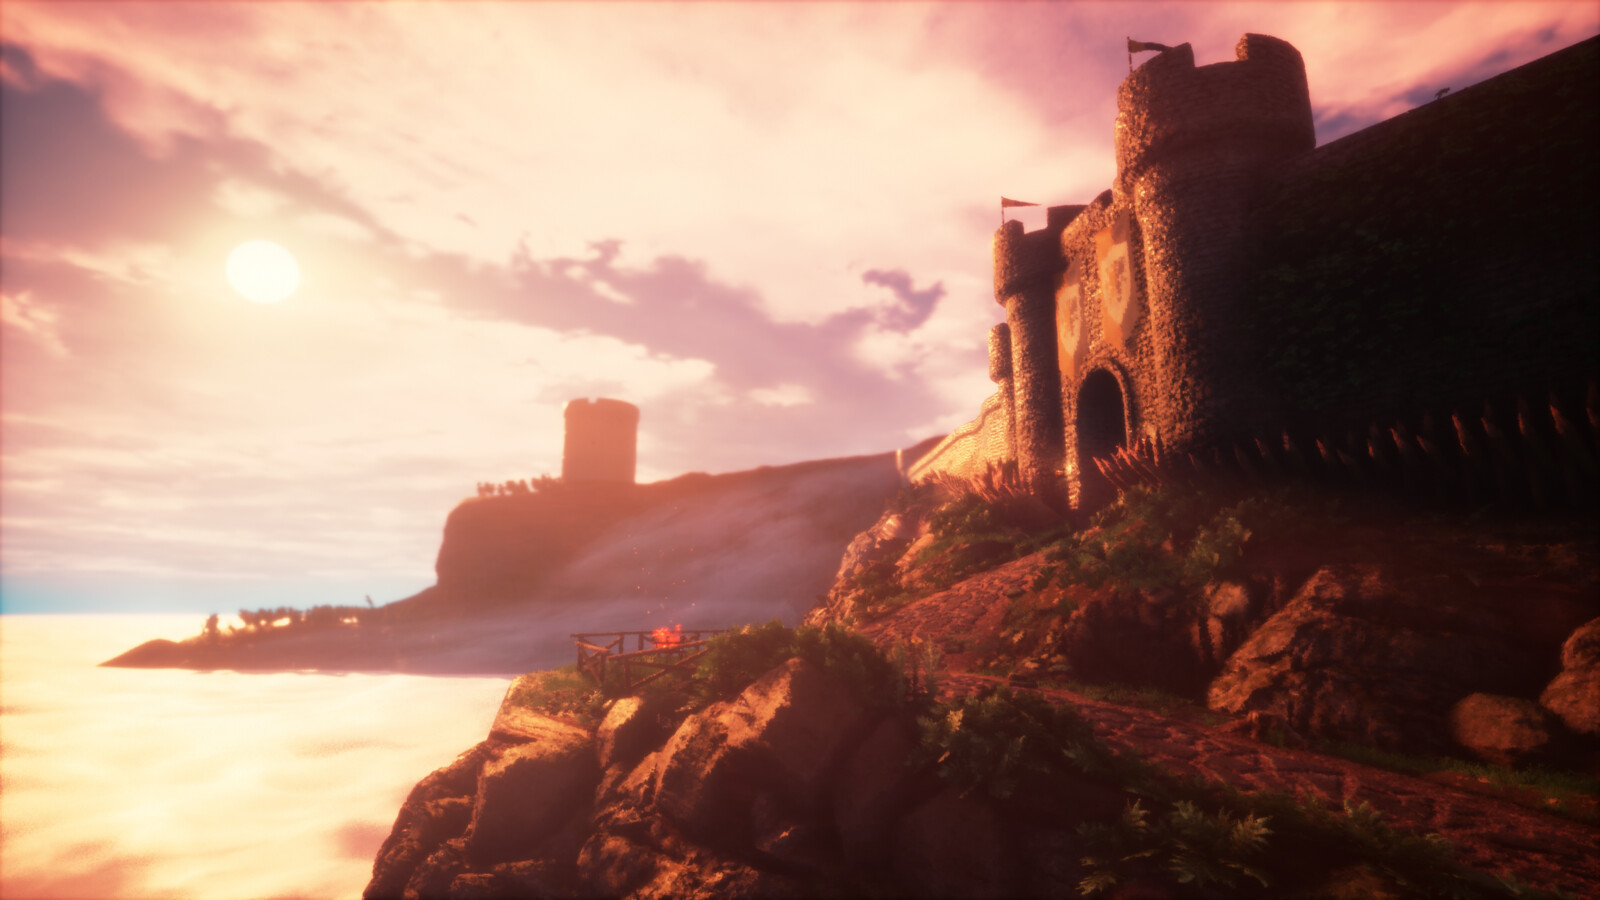 Castle In The Clouds - UE4 Stylized Environment & Technical Art